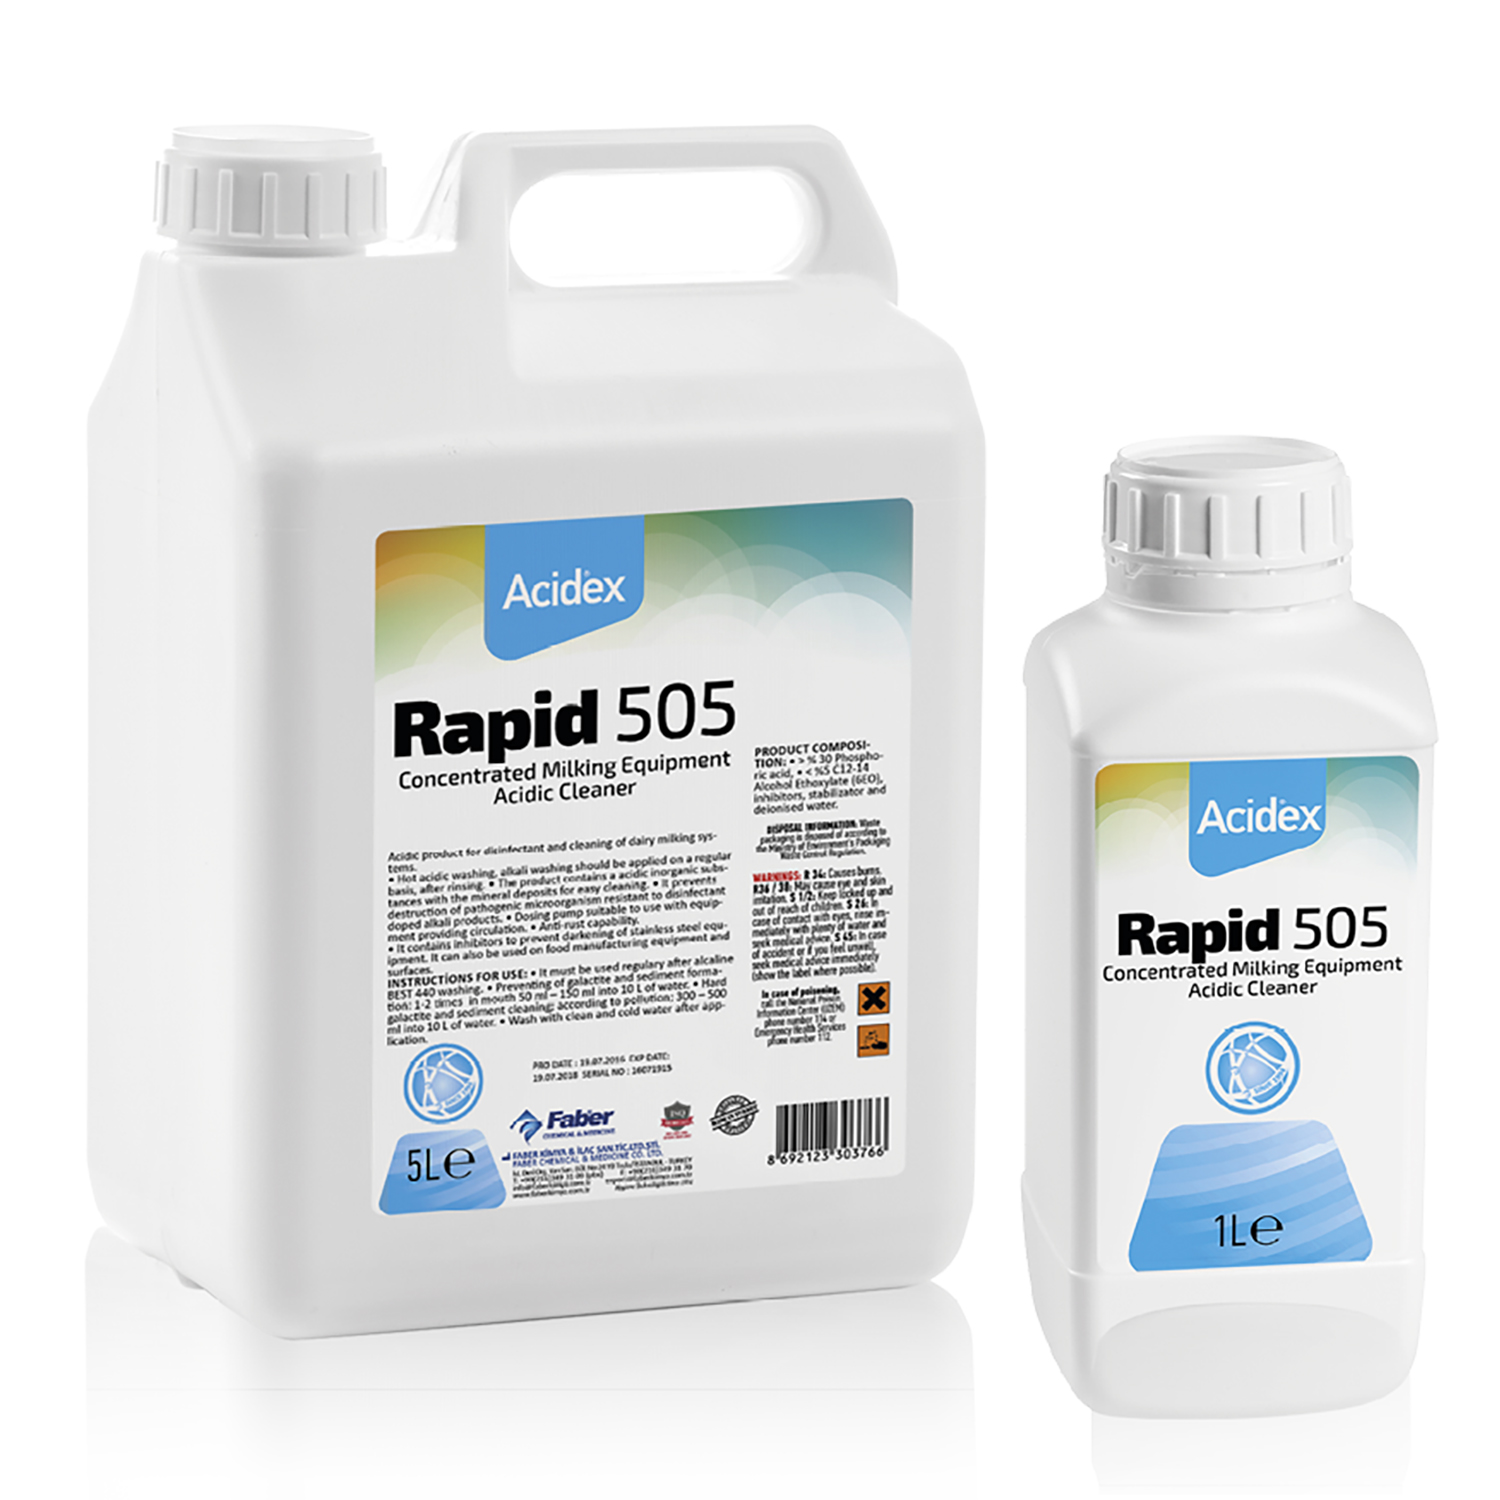 Acidex Rapid 505